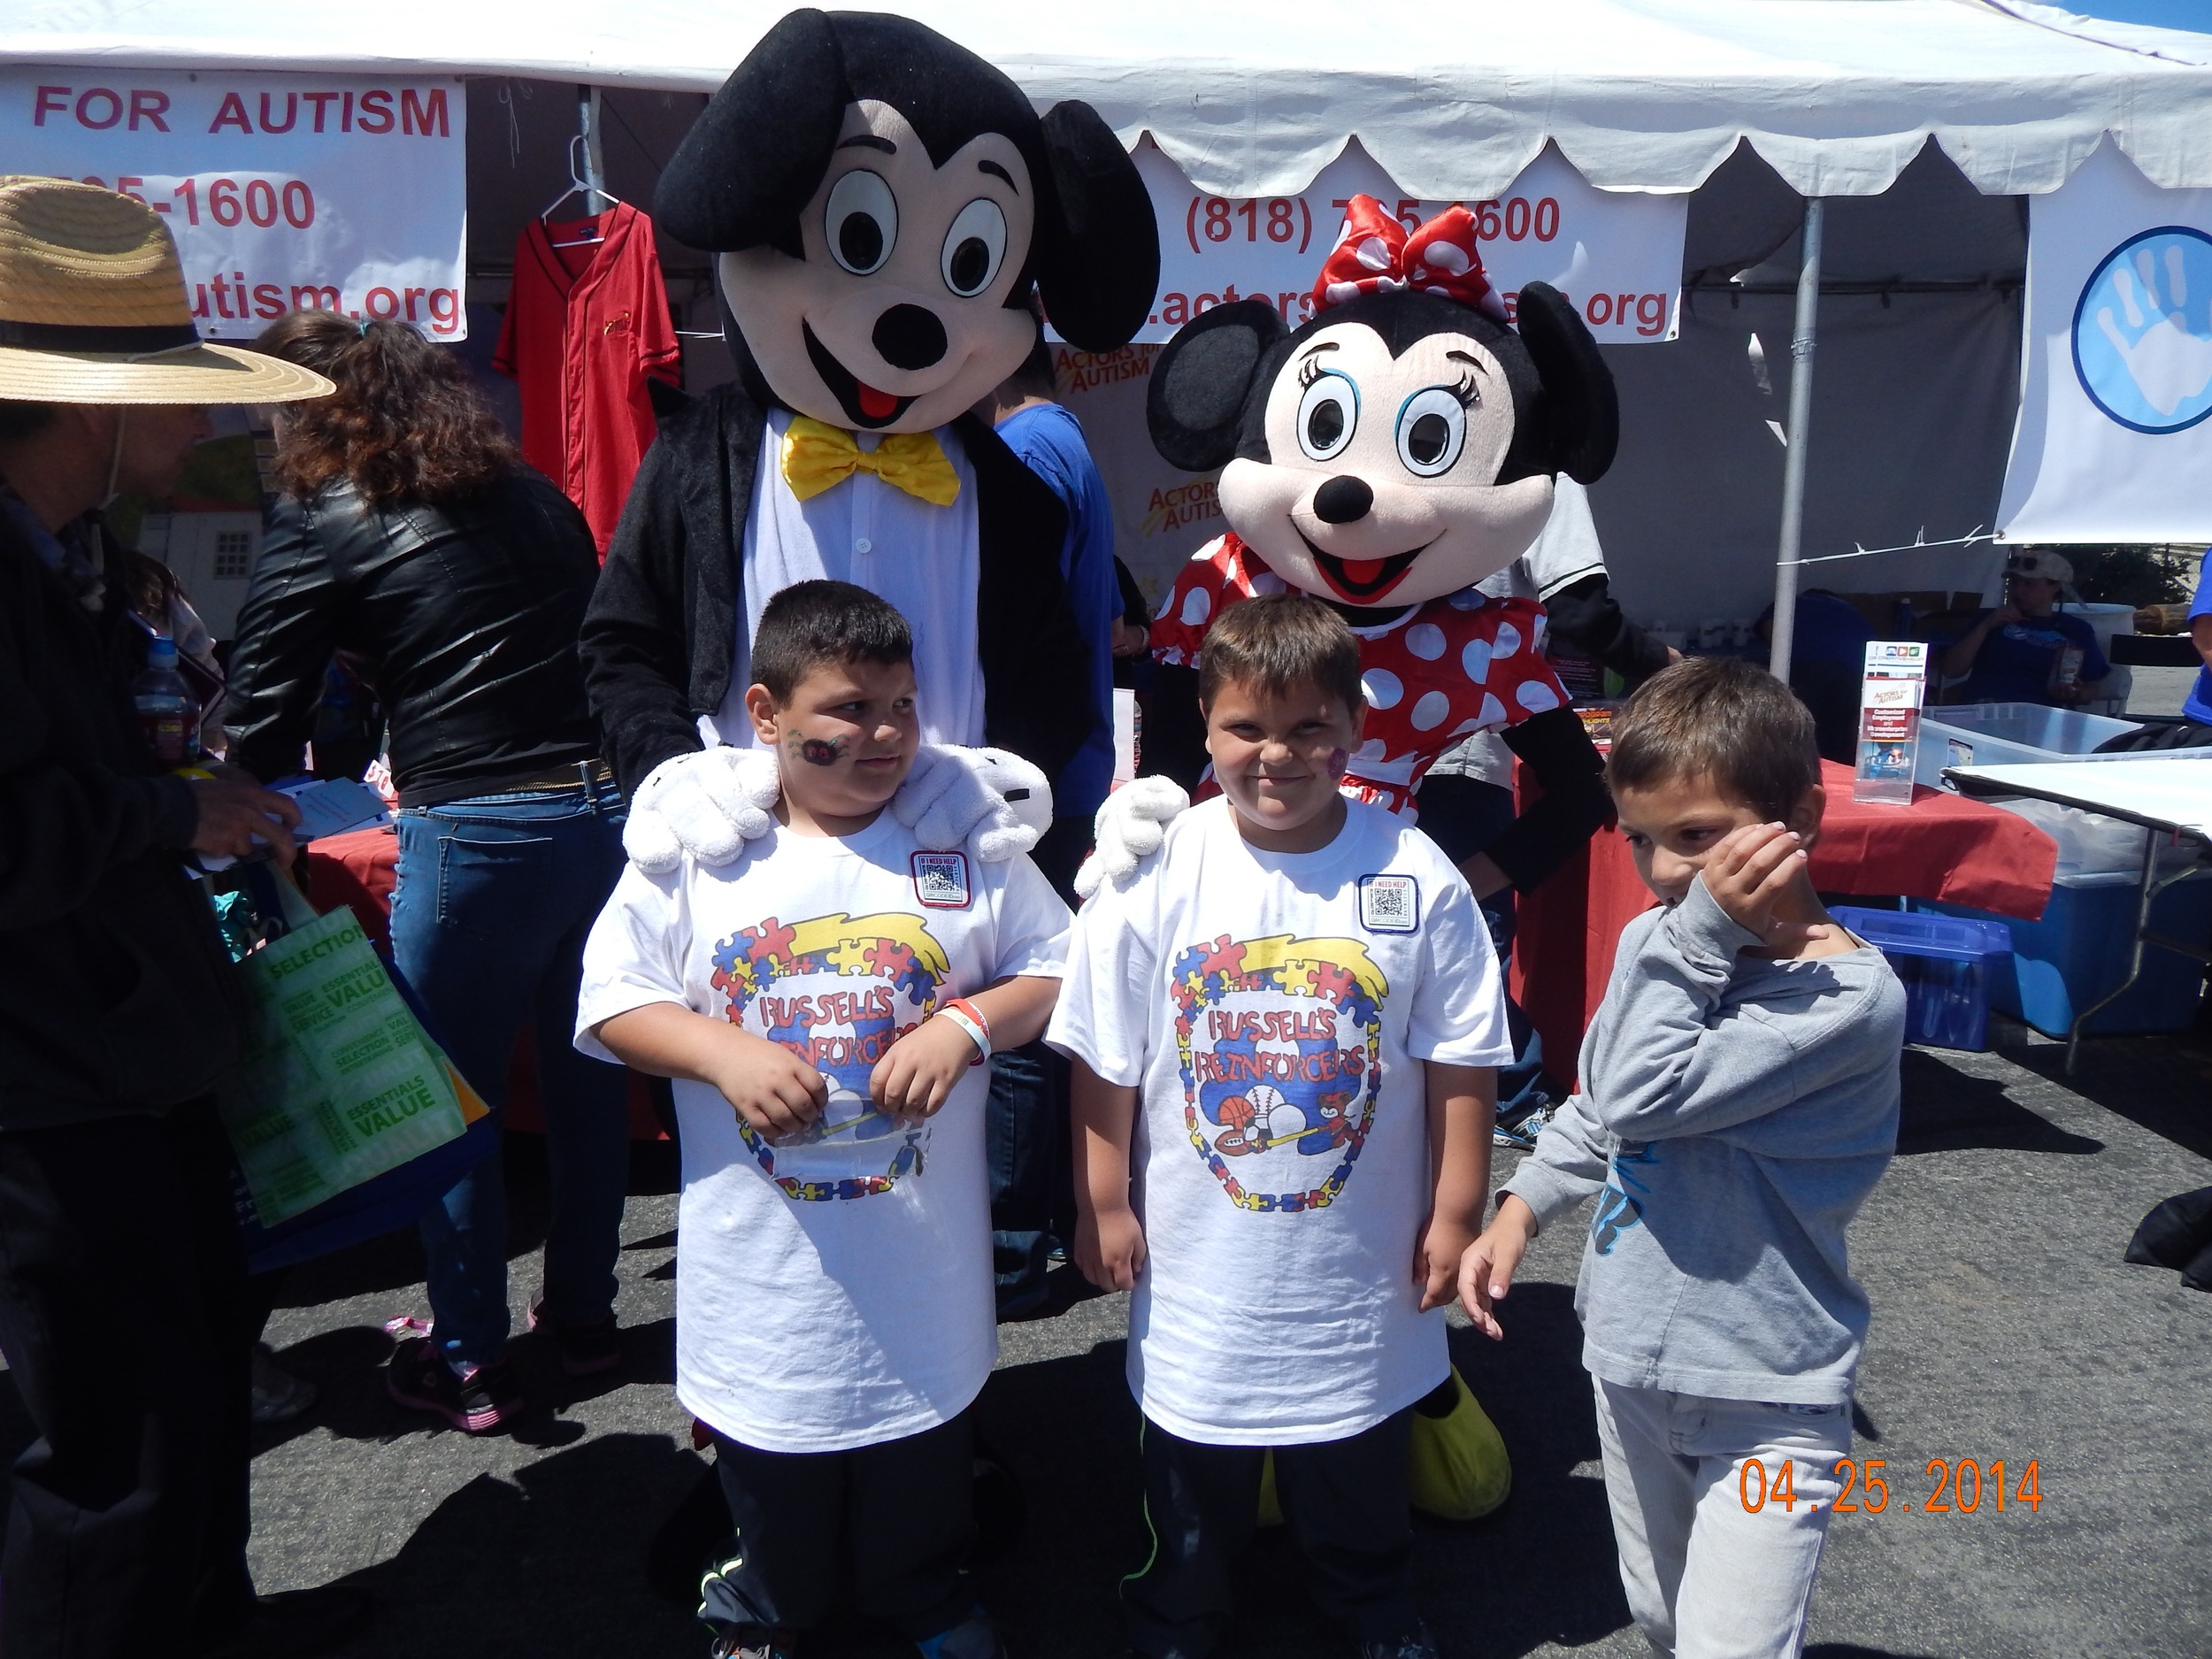 Autism Speaks Walk, Los Angeles 2014